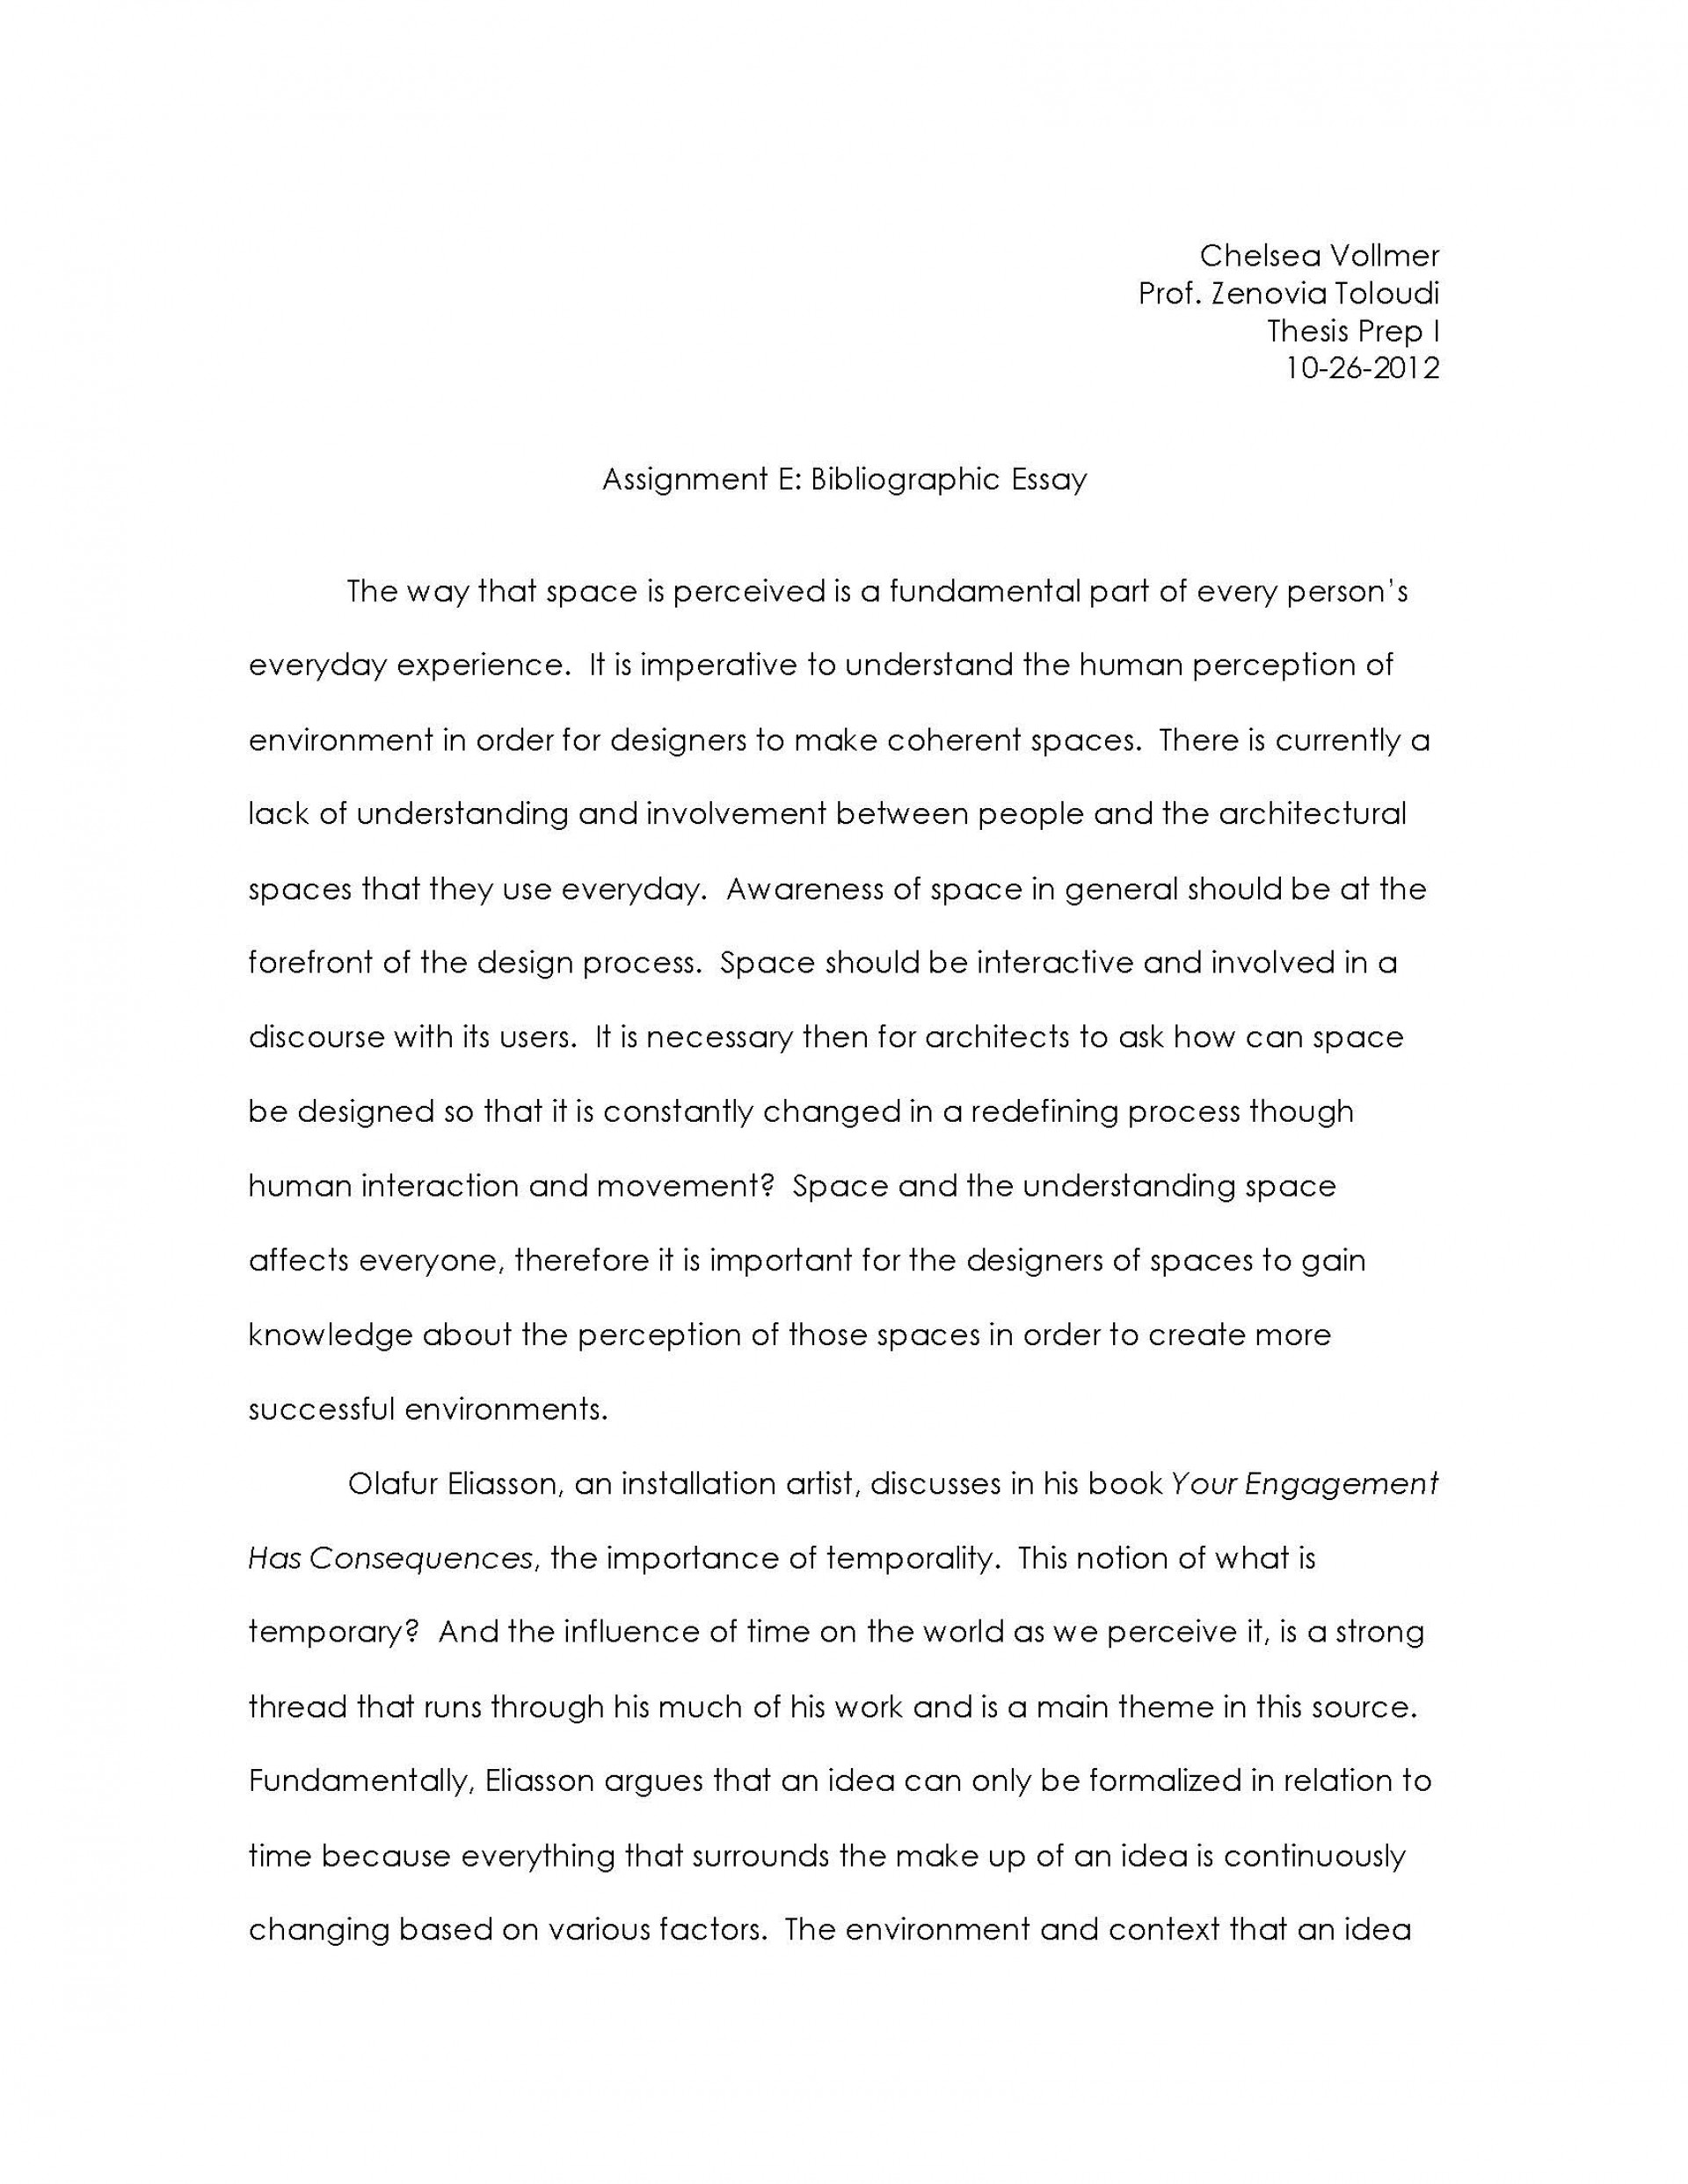 018 Assignment E Page 12 Essay Example Satire On School Dress Beautiful Code 1920